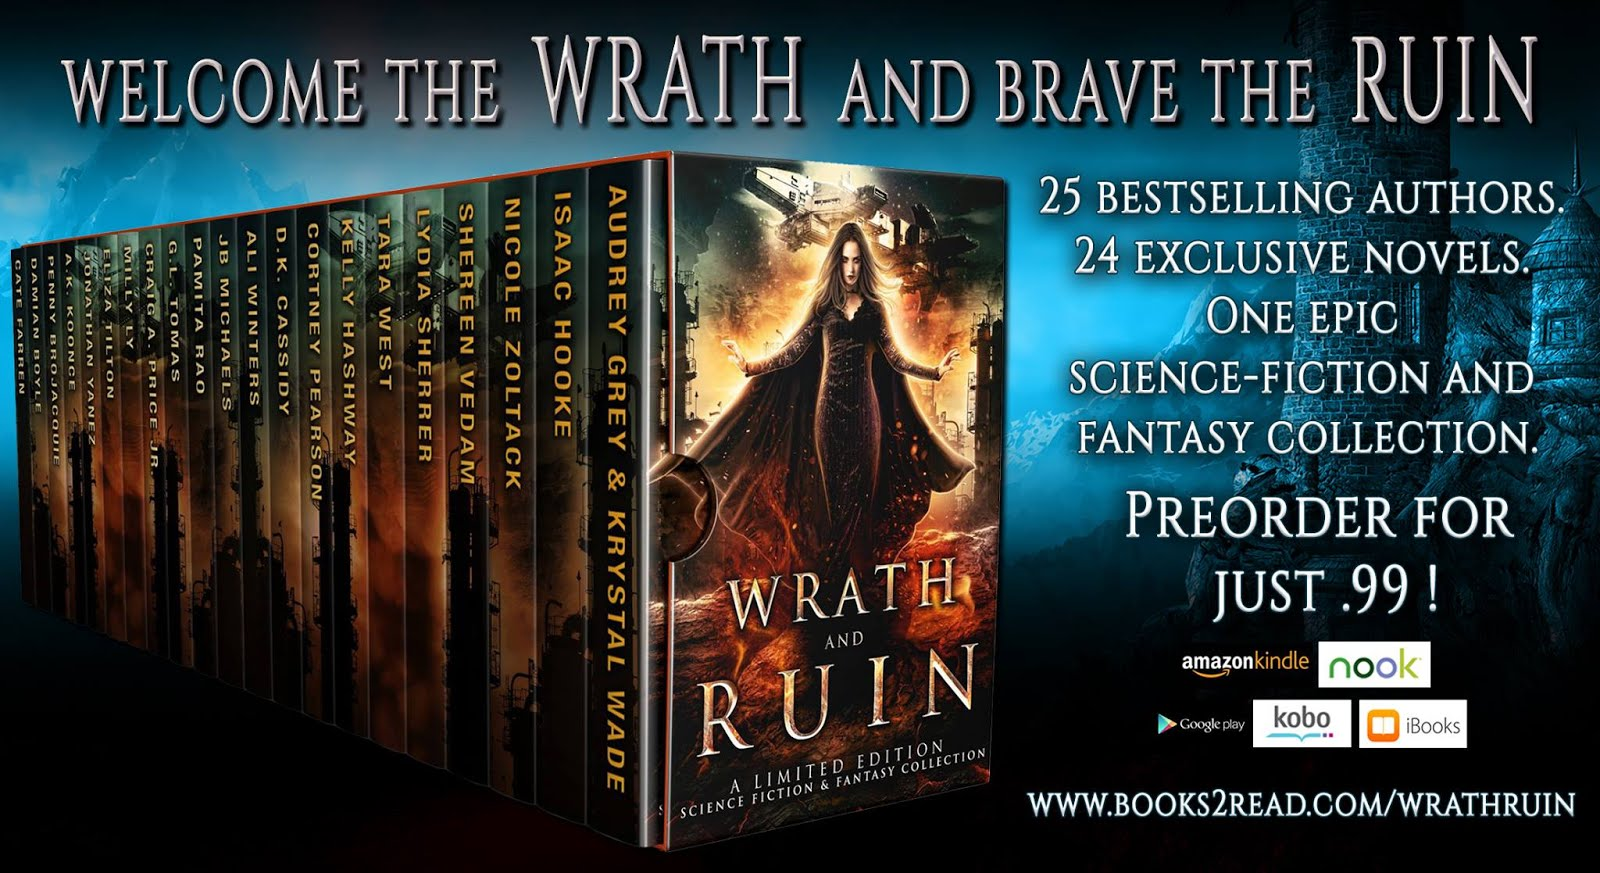 Wrath and Ruin Box Set